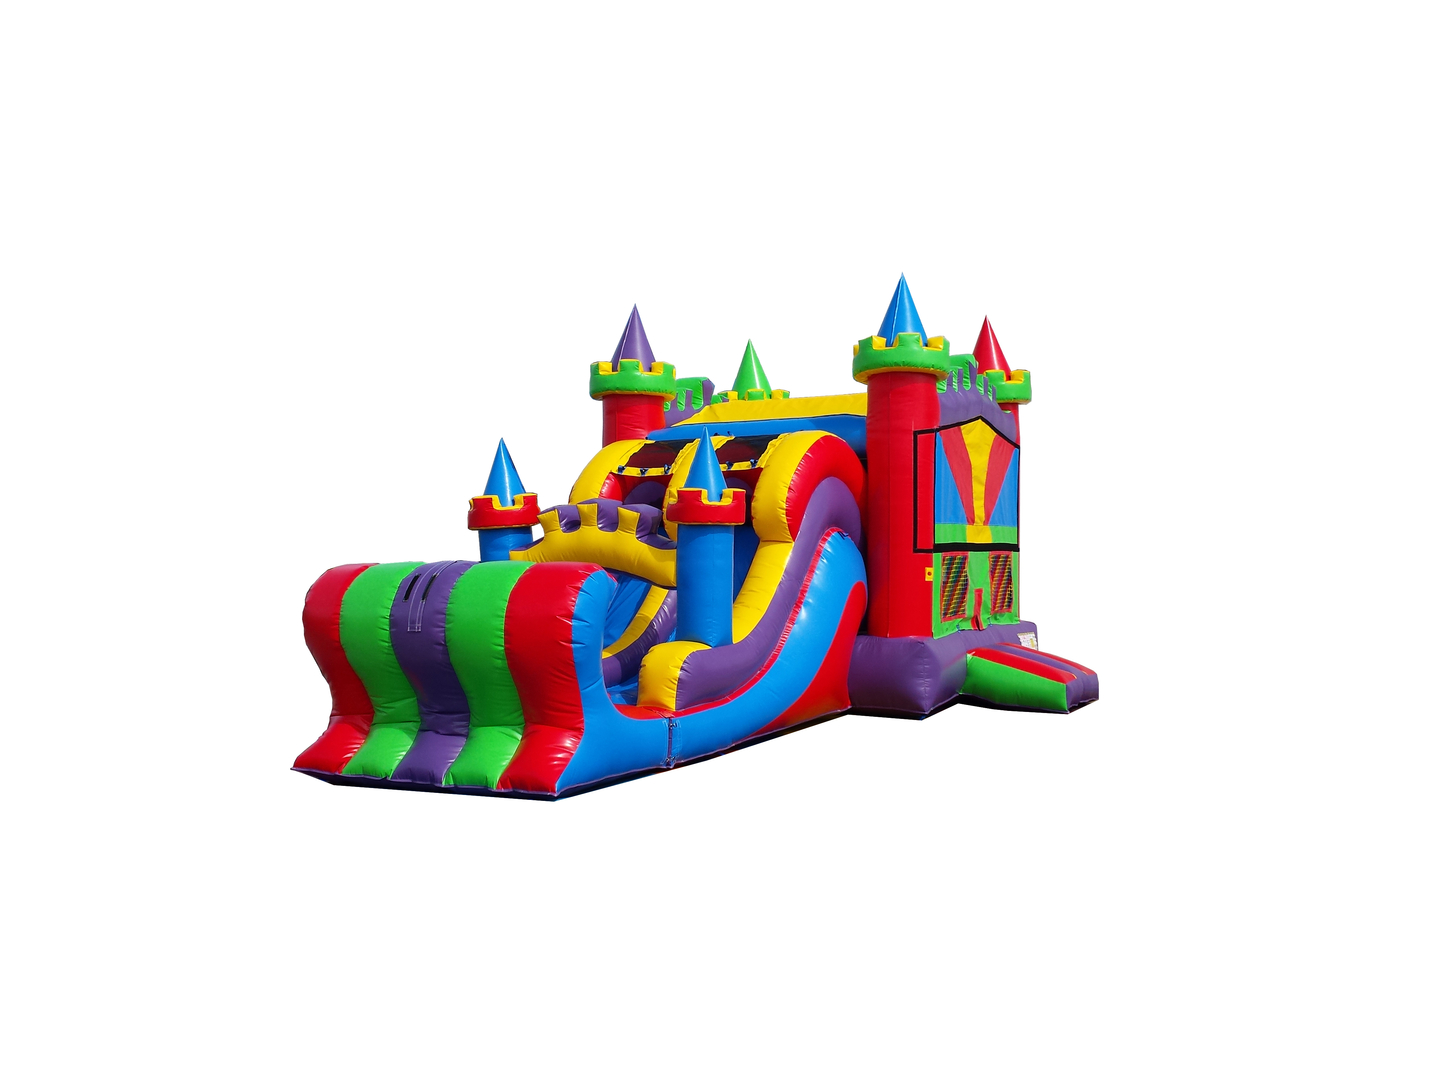 Water slide rentals navarre fort walton beach crestview gulf breeze - Bounce House Rentals Water Slide Rentals Playground Bounce House Navarre Fl